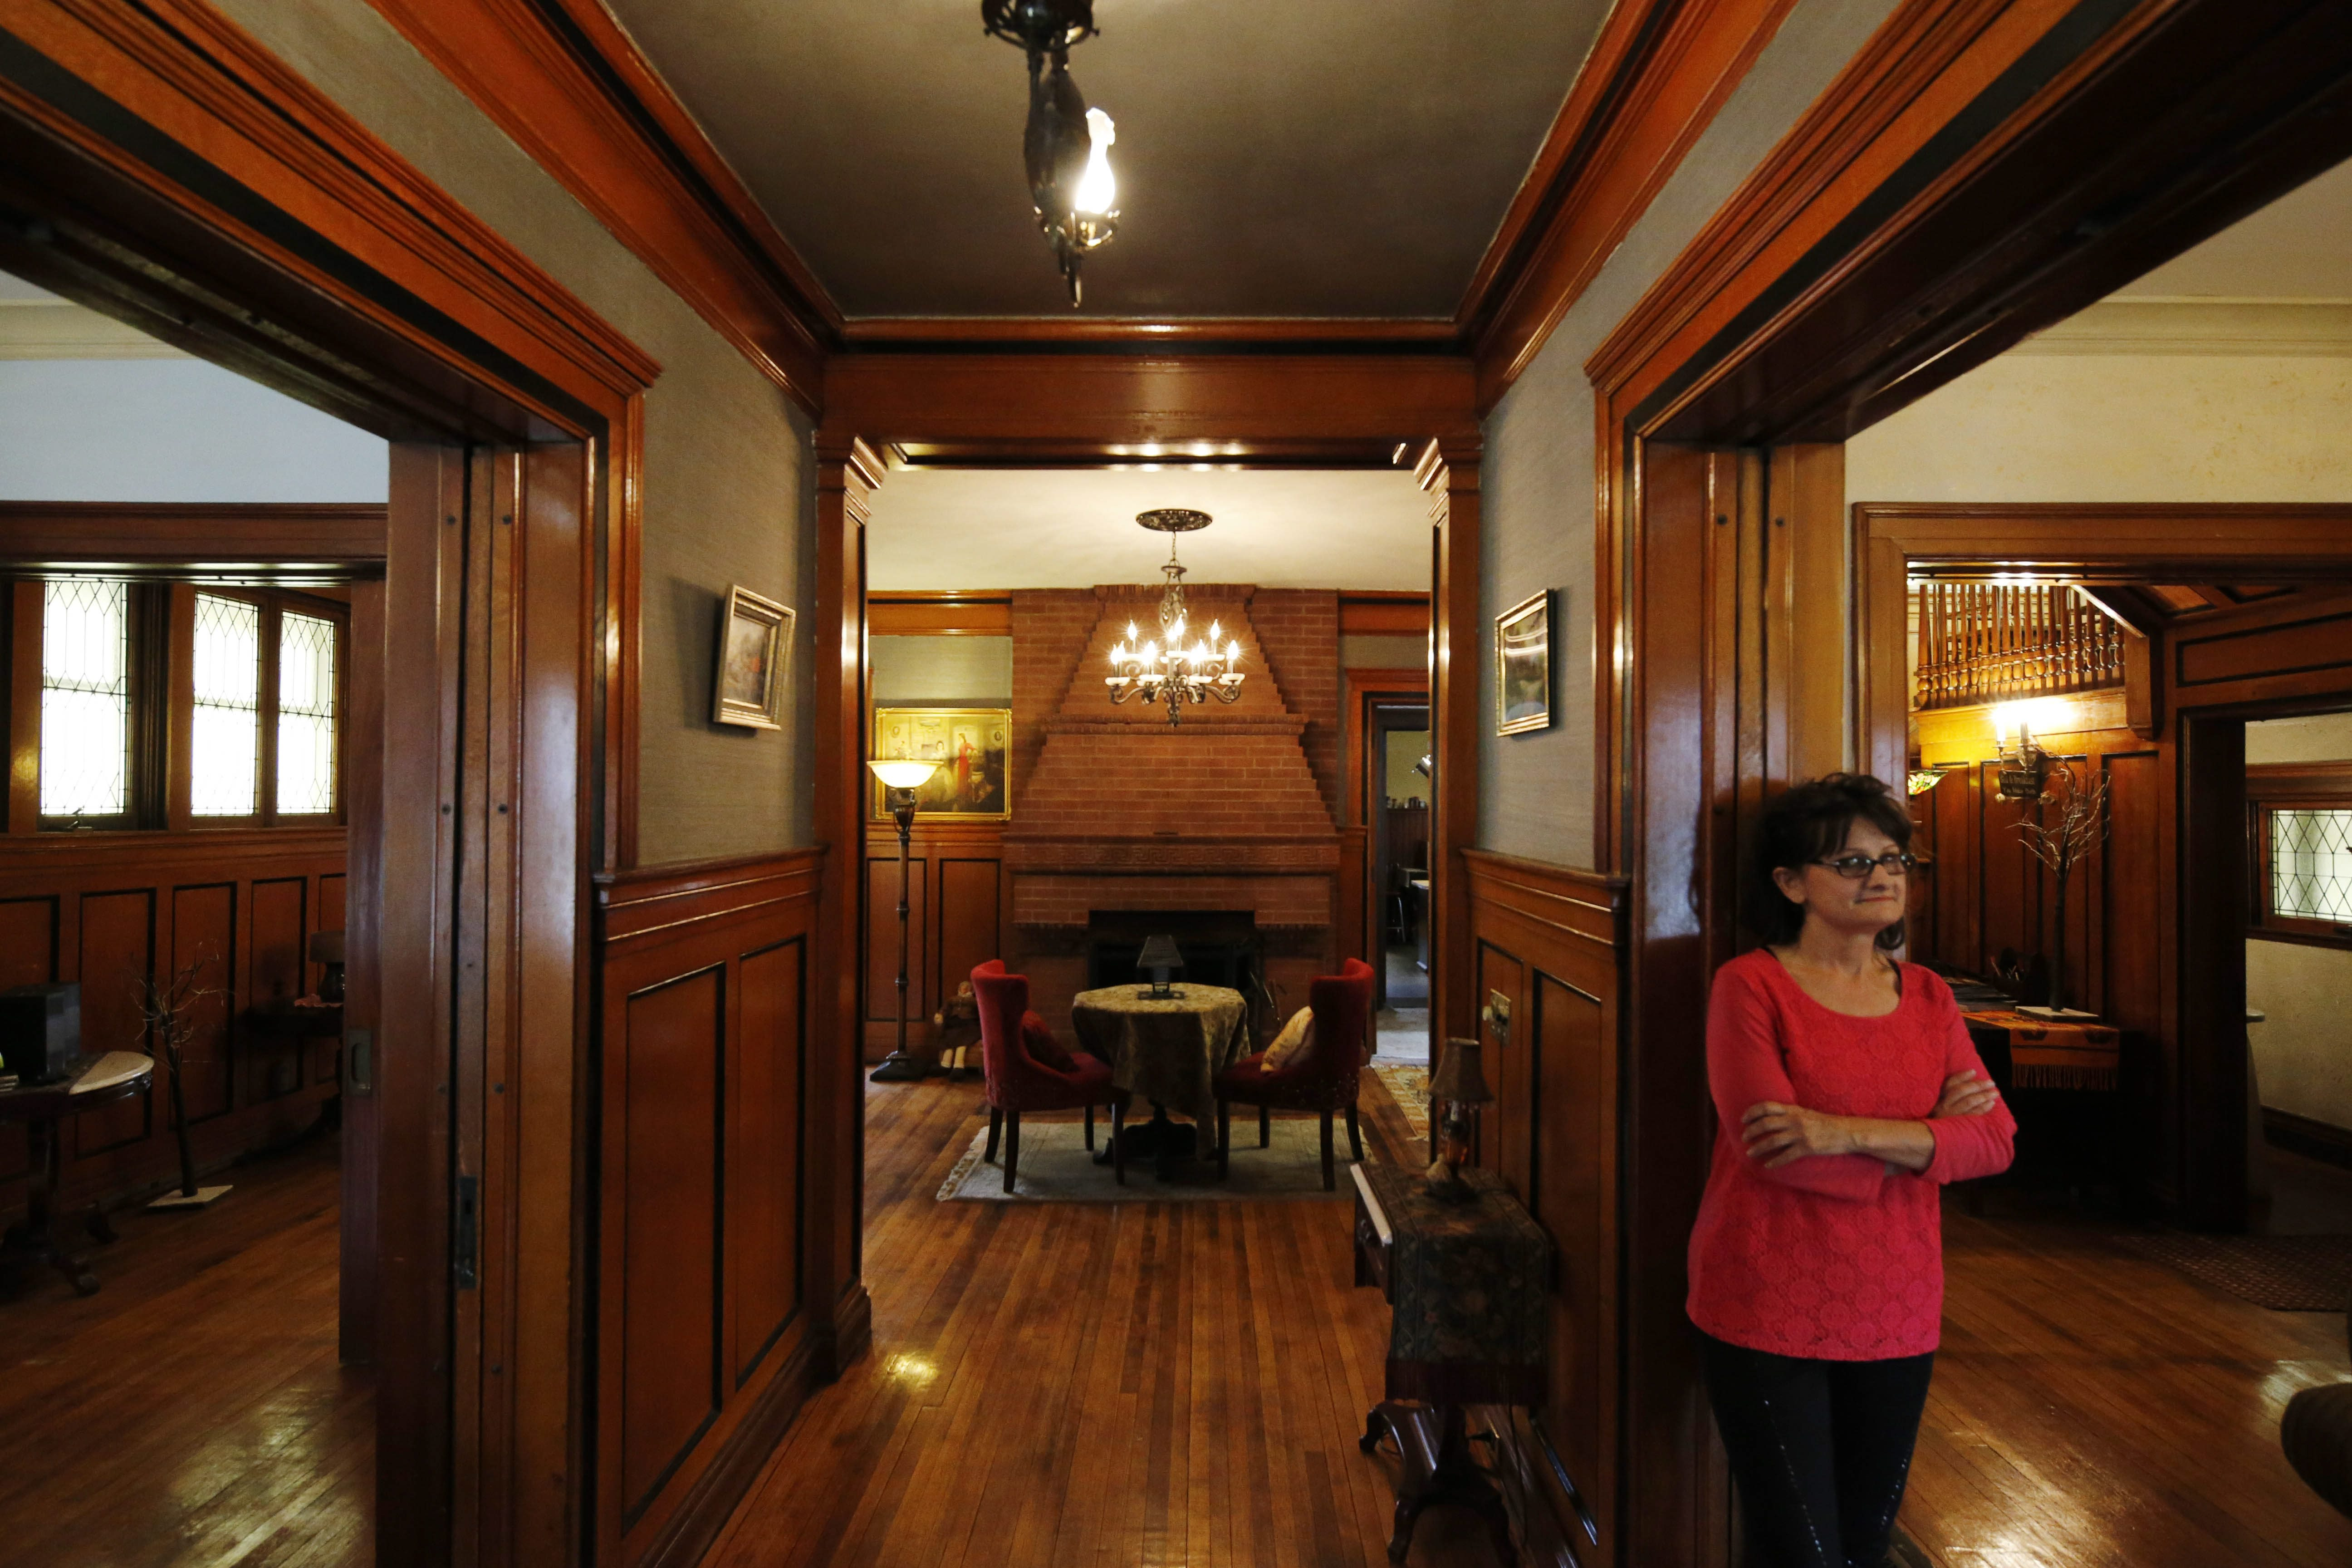 Brenda Shaw, standing in her refurbished house, is on the May 15 Historic Linwood Tour of Homes. (Derek Gee/Buffalo News)